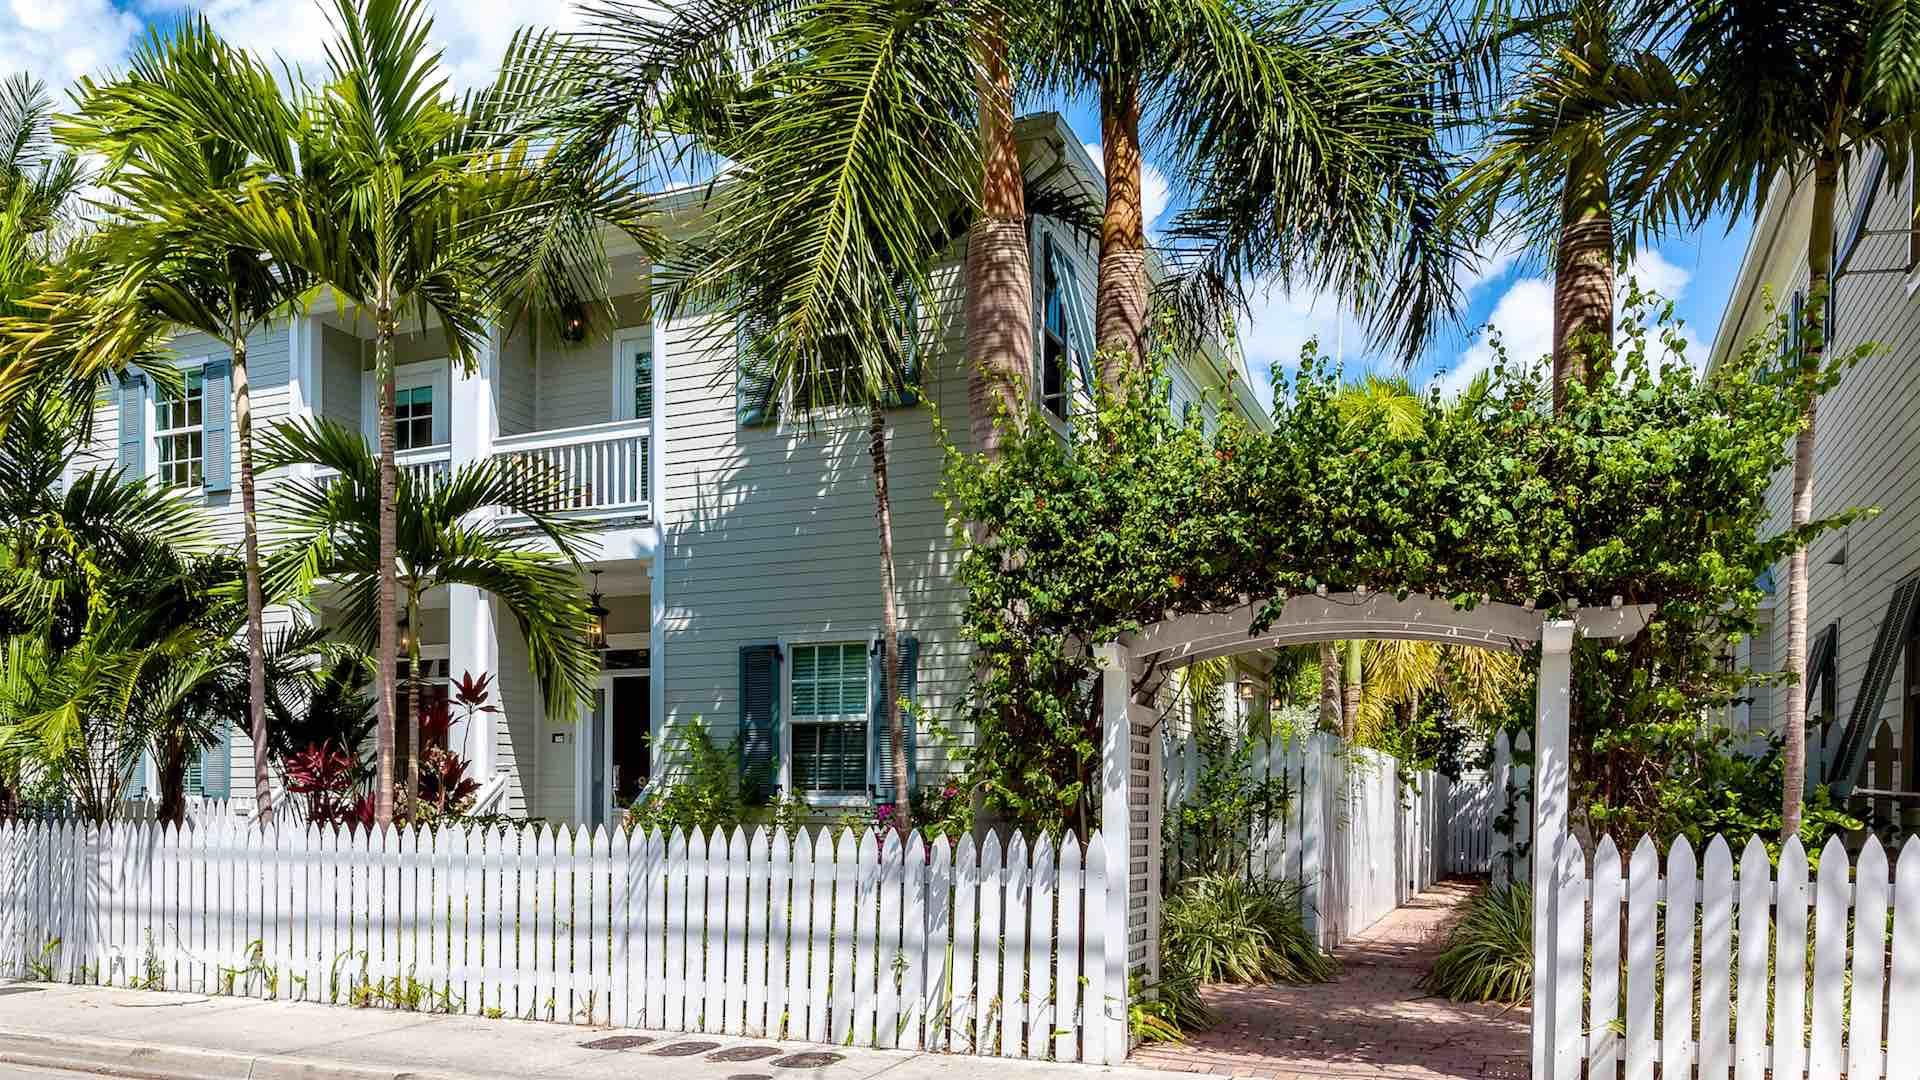 The Ibis & The Crane is located on a quiet residential street in Old Town, Key West...